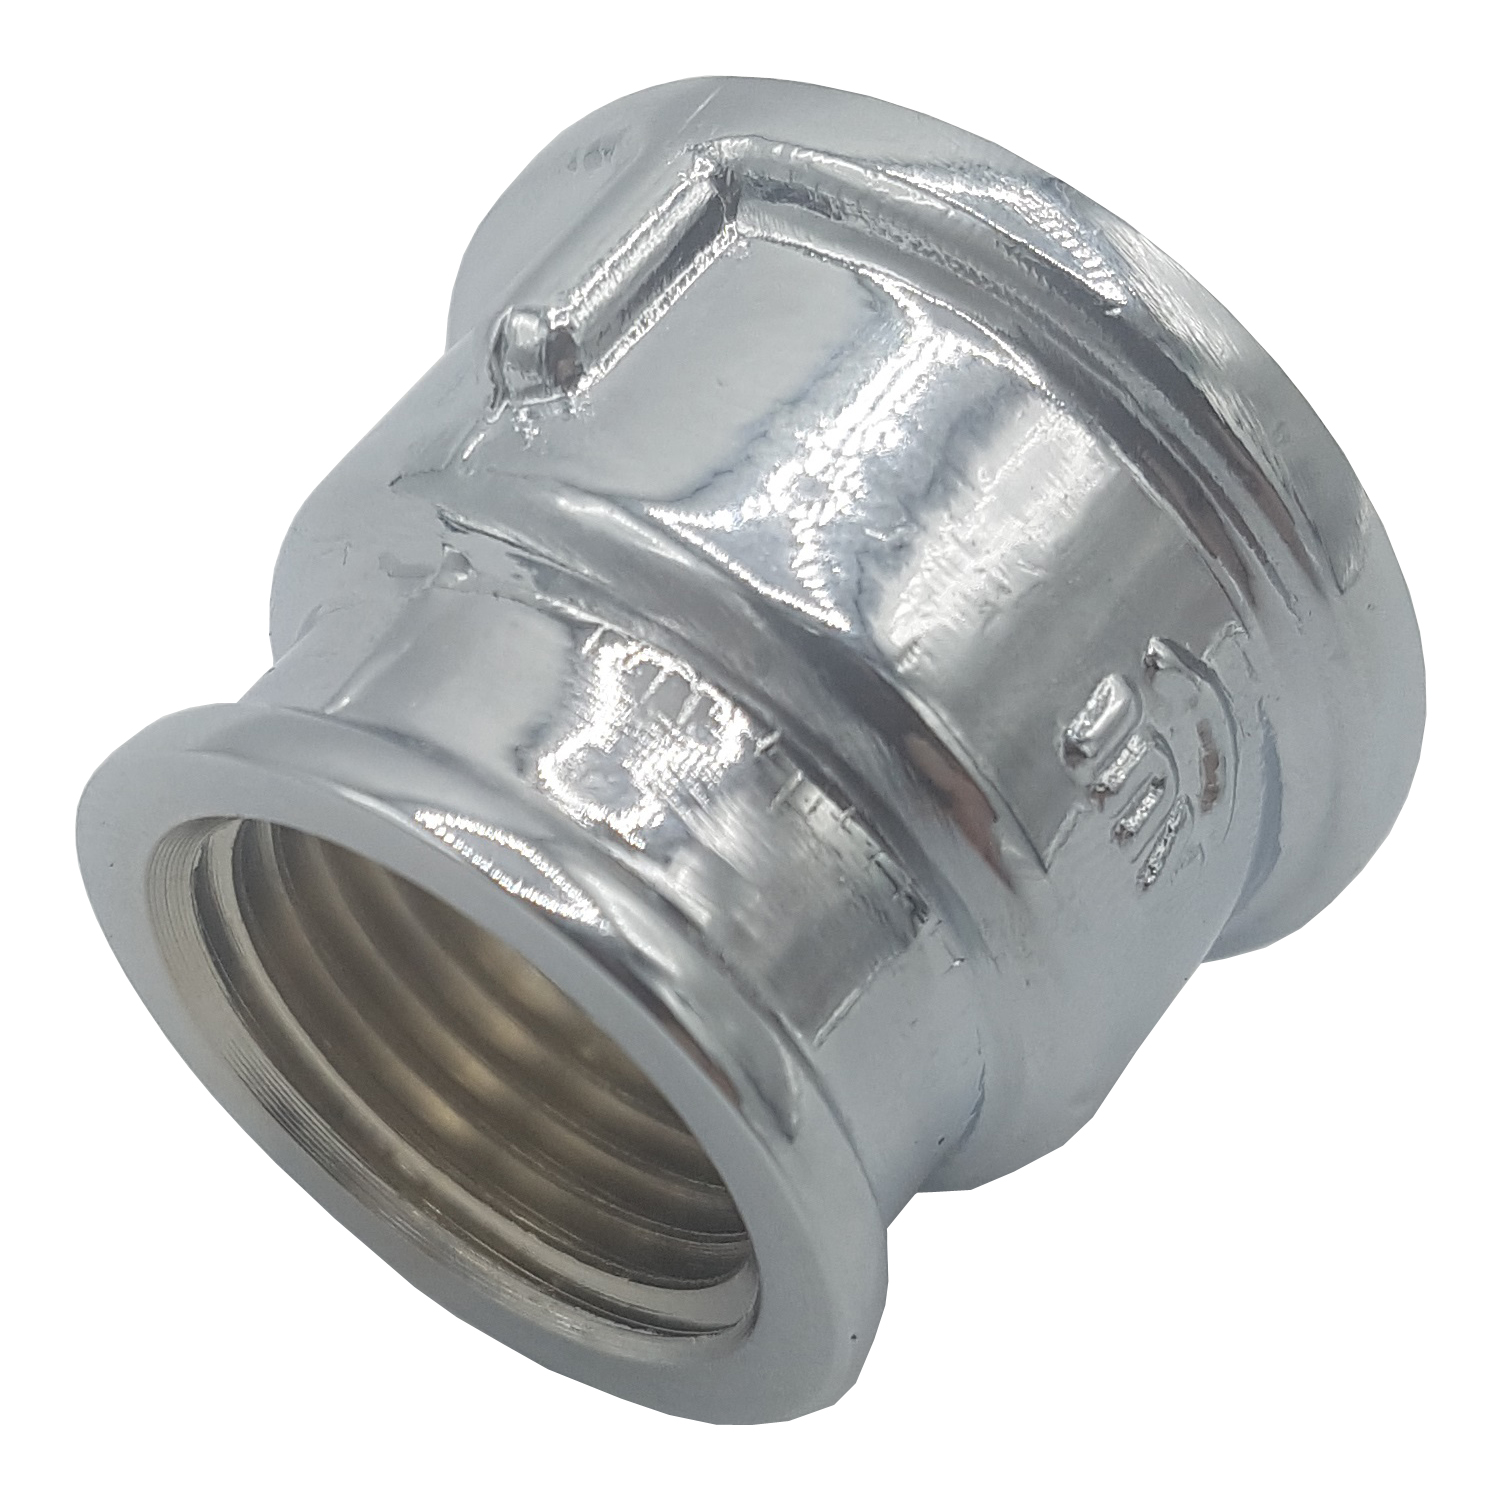 3/4x1/2 Inch Pipe Connection Reduction Female Fittings Muff Chrome